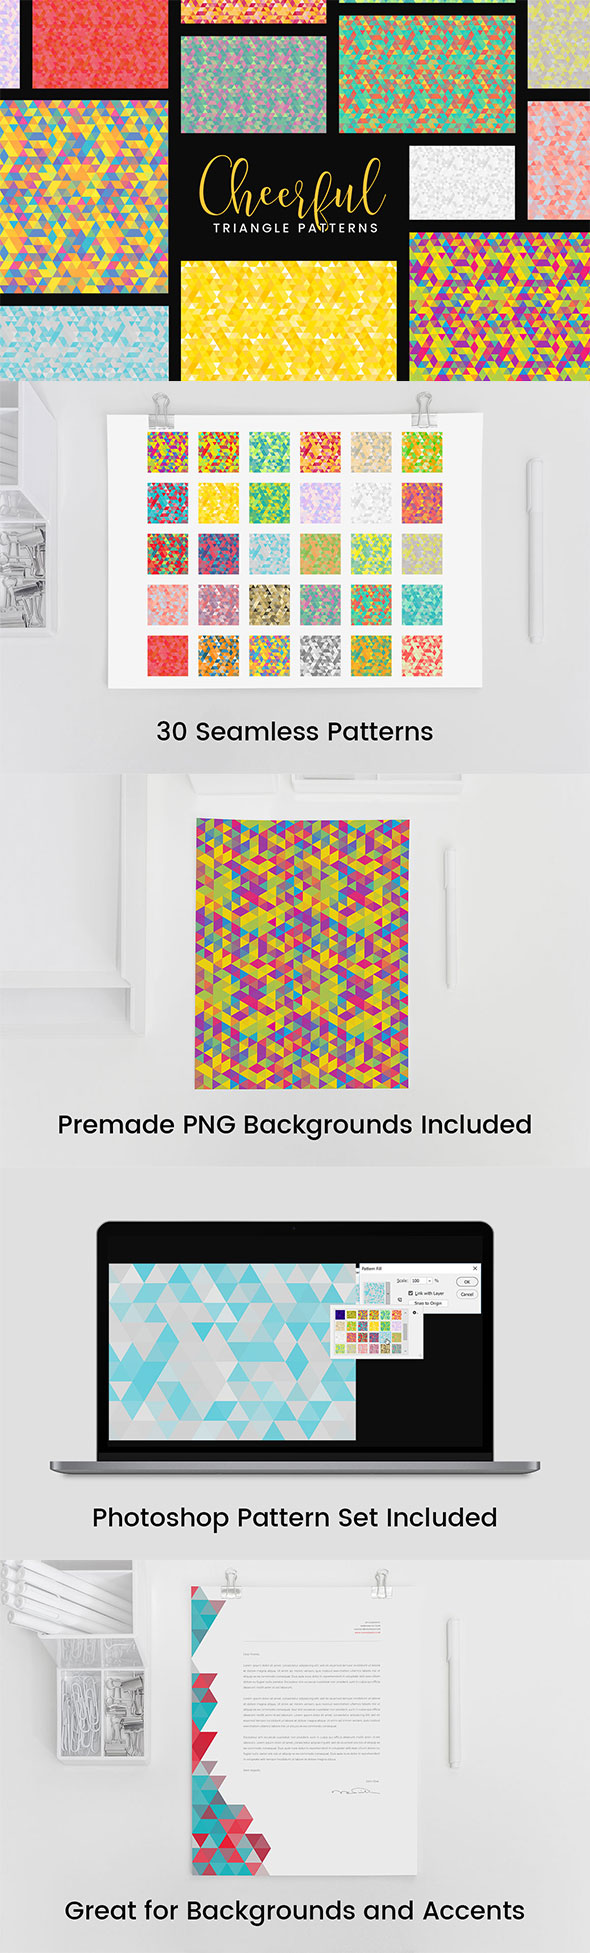 30 Cheerful Triangle Patterns - Abstract Textures / Fills / Patterns